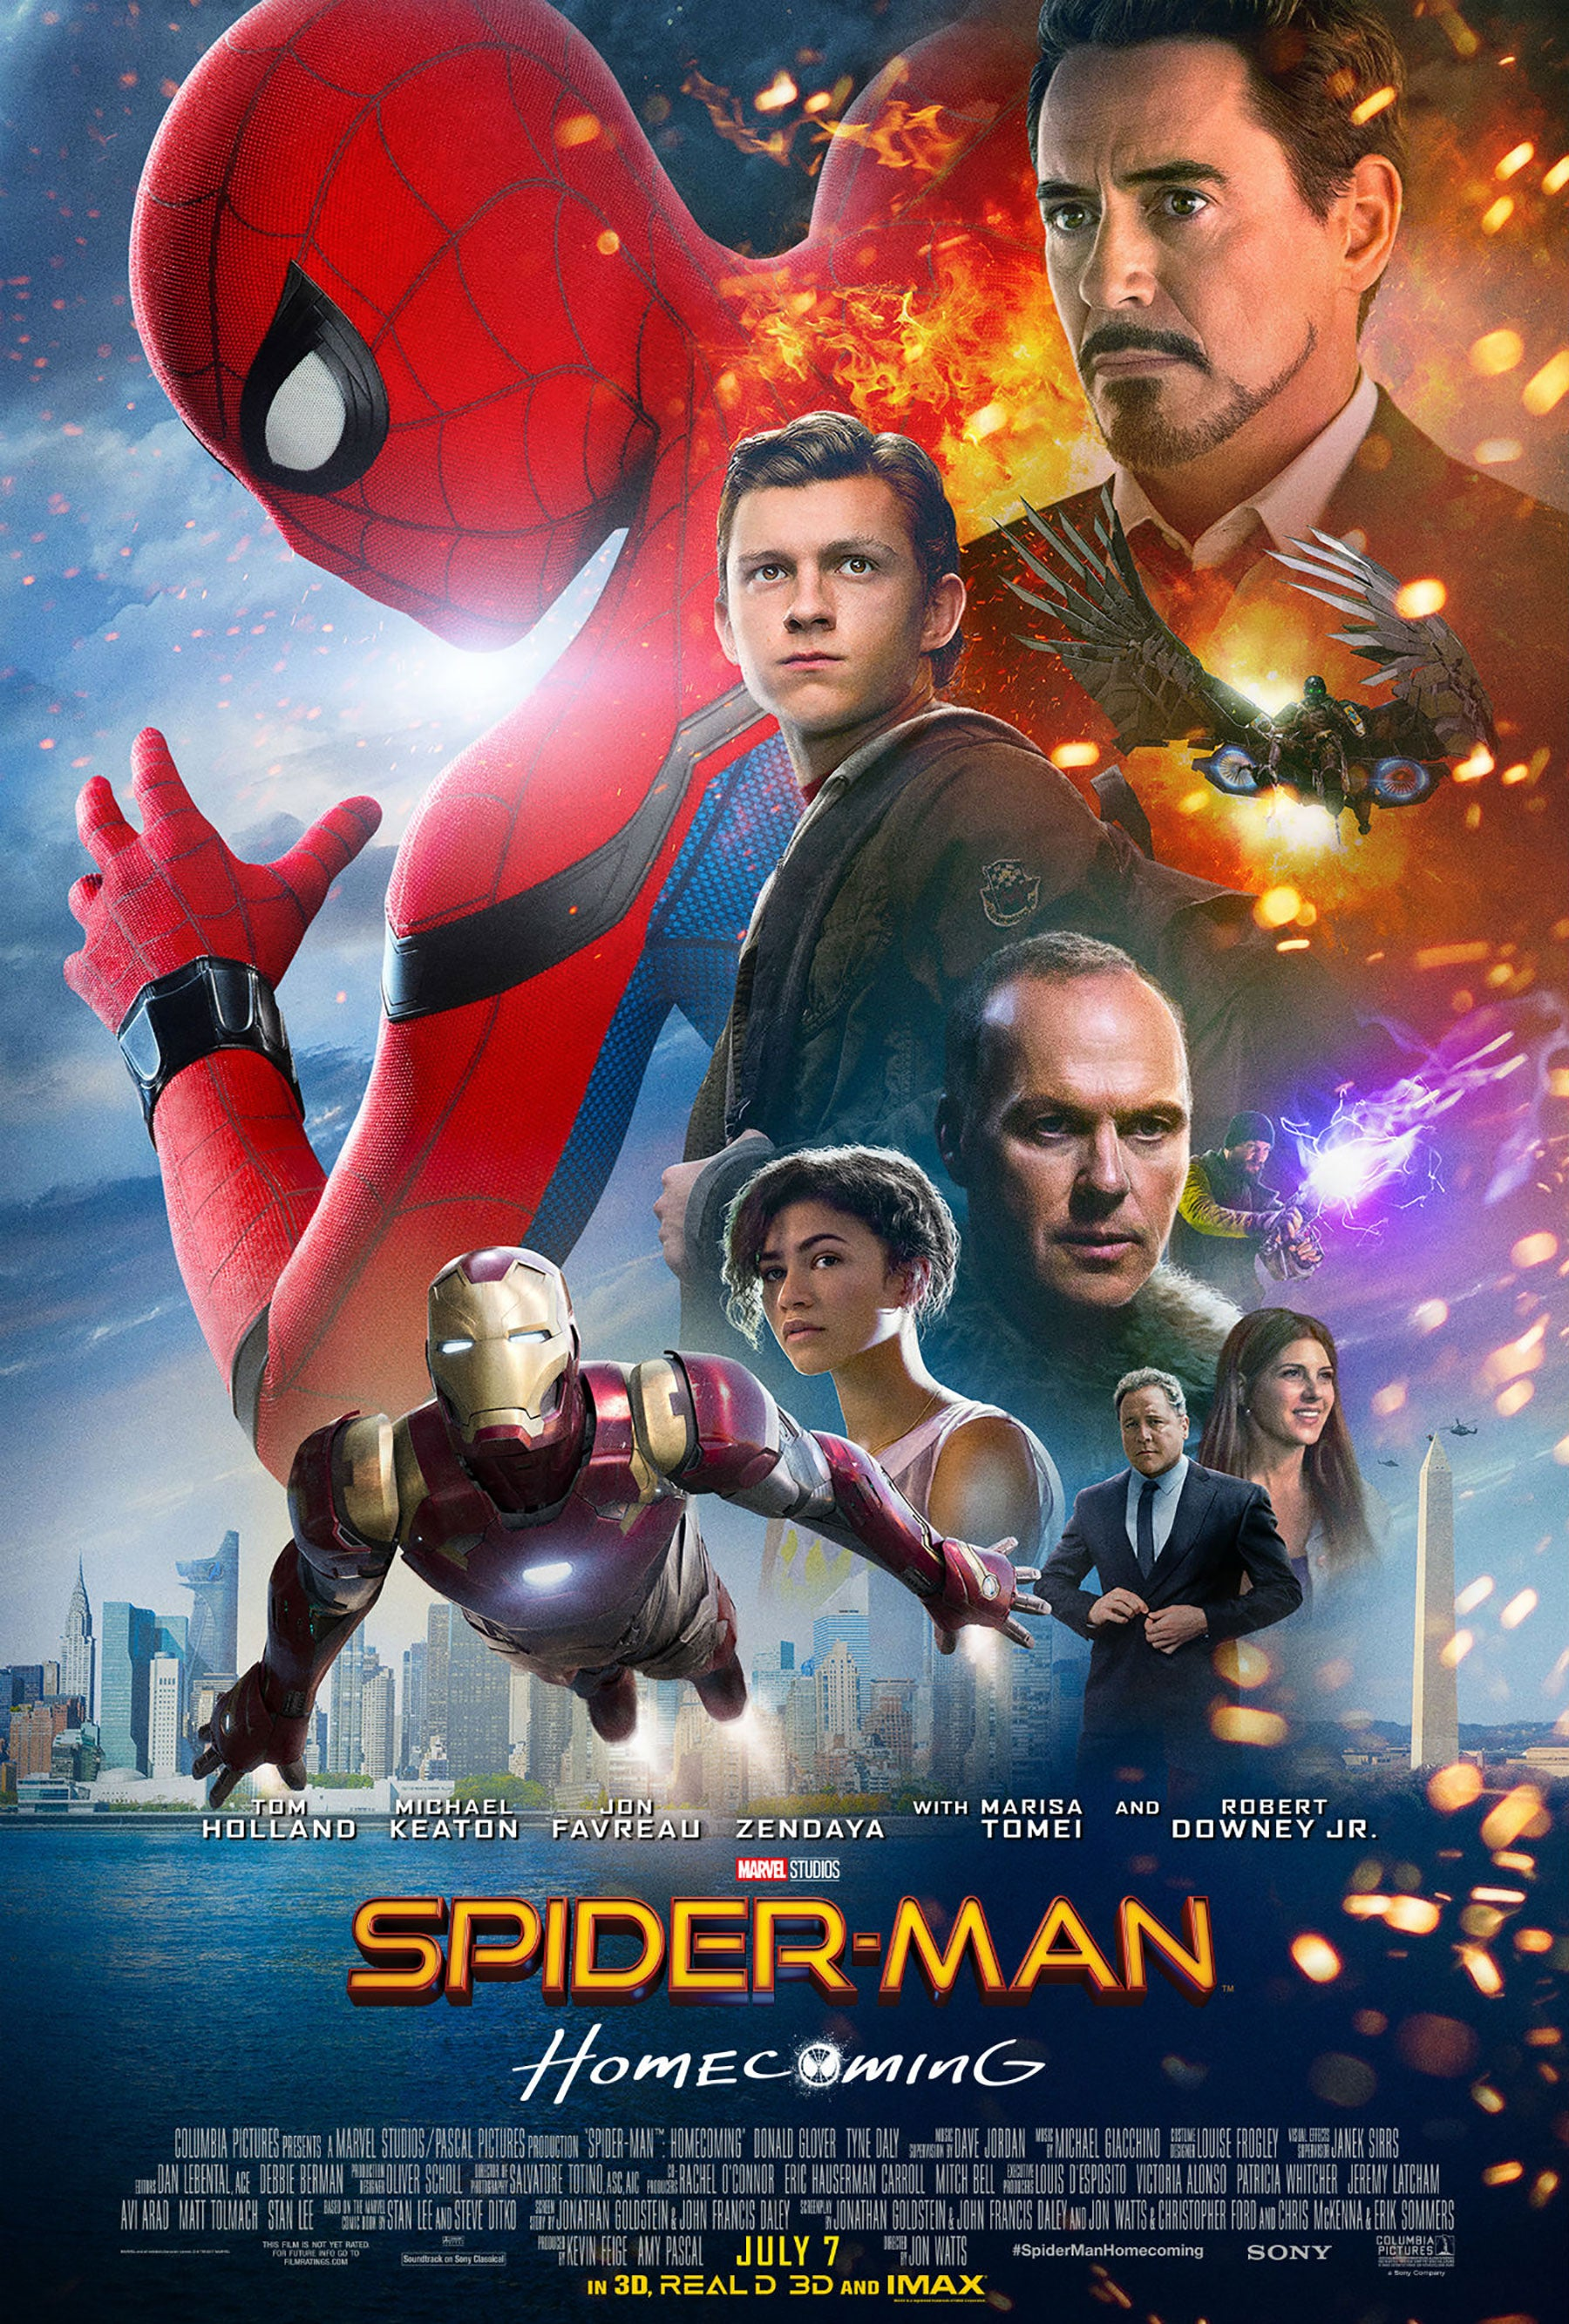 Spider-Man Homecoming Movie Poster - Marvel Cinematic Universe